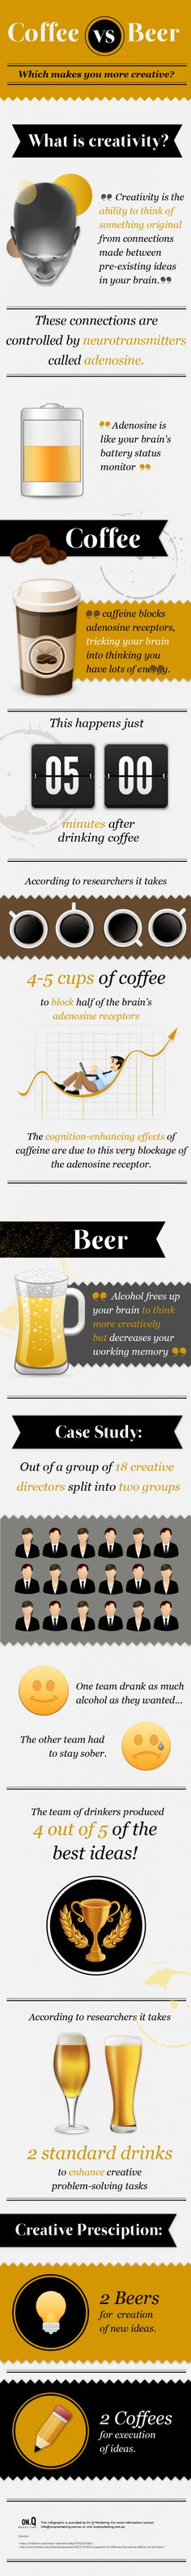 coffee or beer  what makes you more creative 51e89fd2e6b92 w587 What Makes You More Creative, Coffee or Beer? (Infographic)